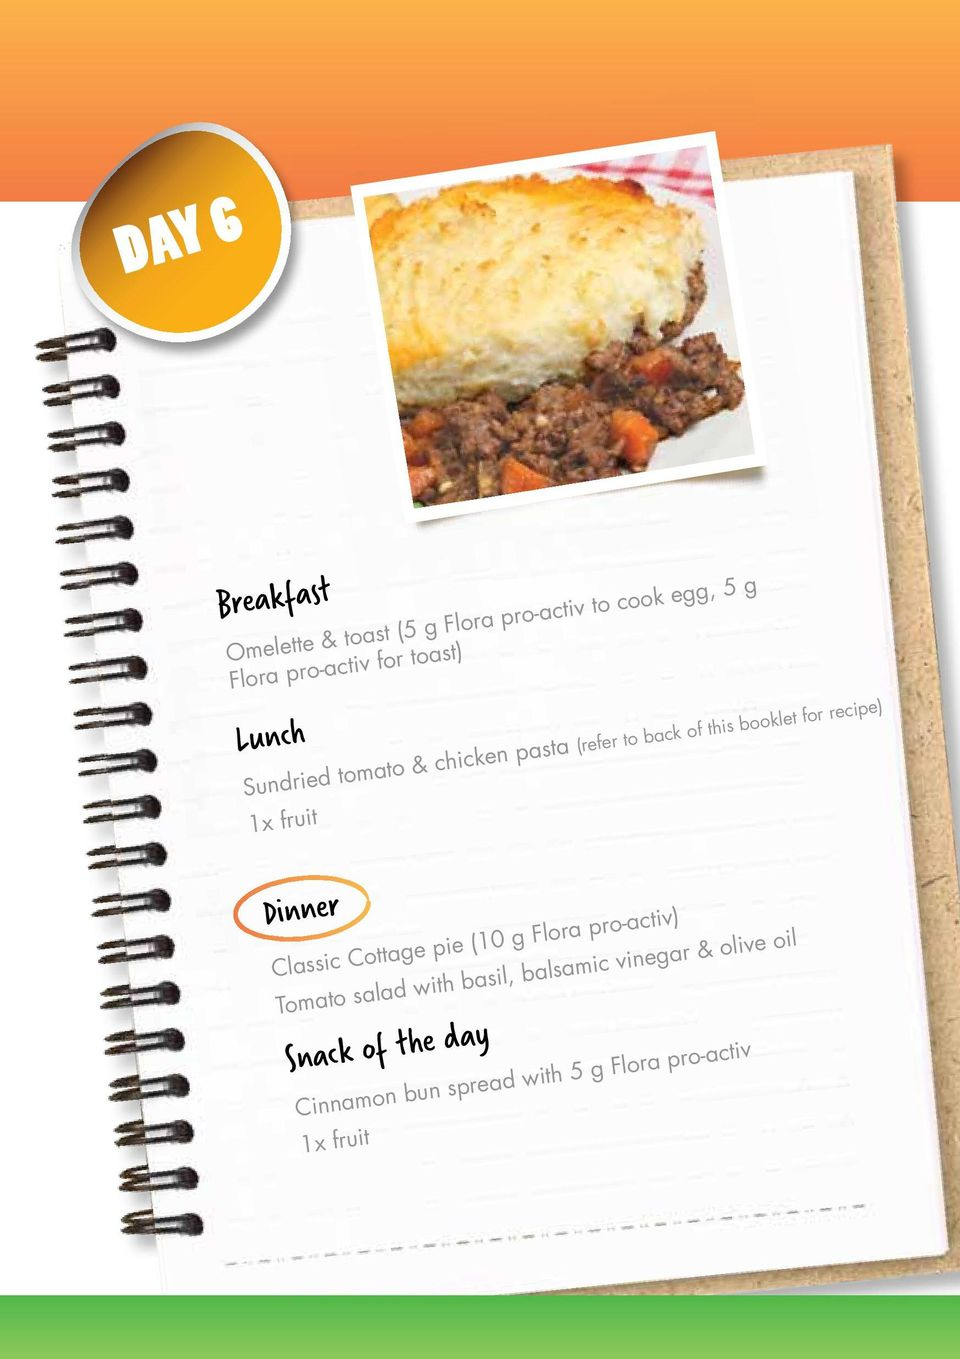 recipe) 1x fruit Dinner Classic Cottage pie (10 g Flora pro-activ) Tomato salad with